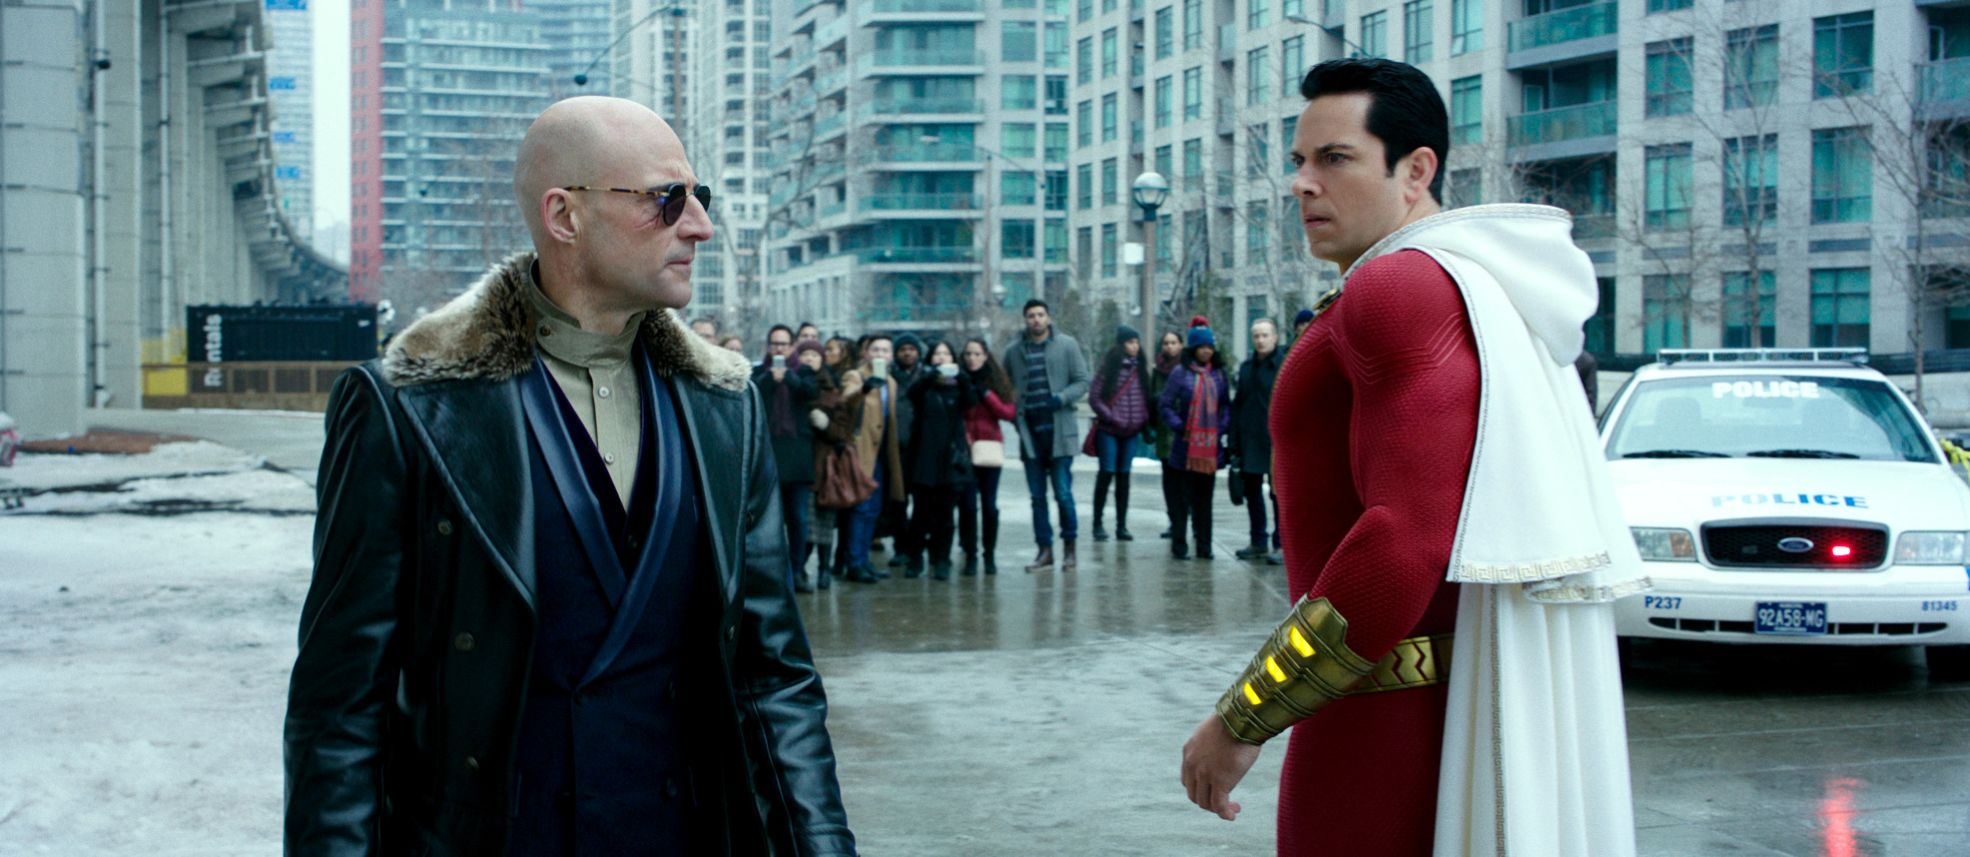 SHAZAM Review- Dr. Sivana and SHAZAM